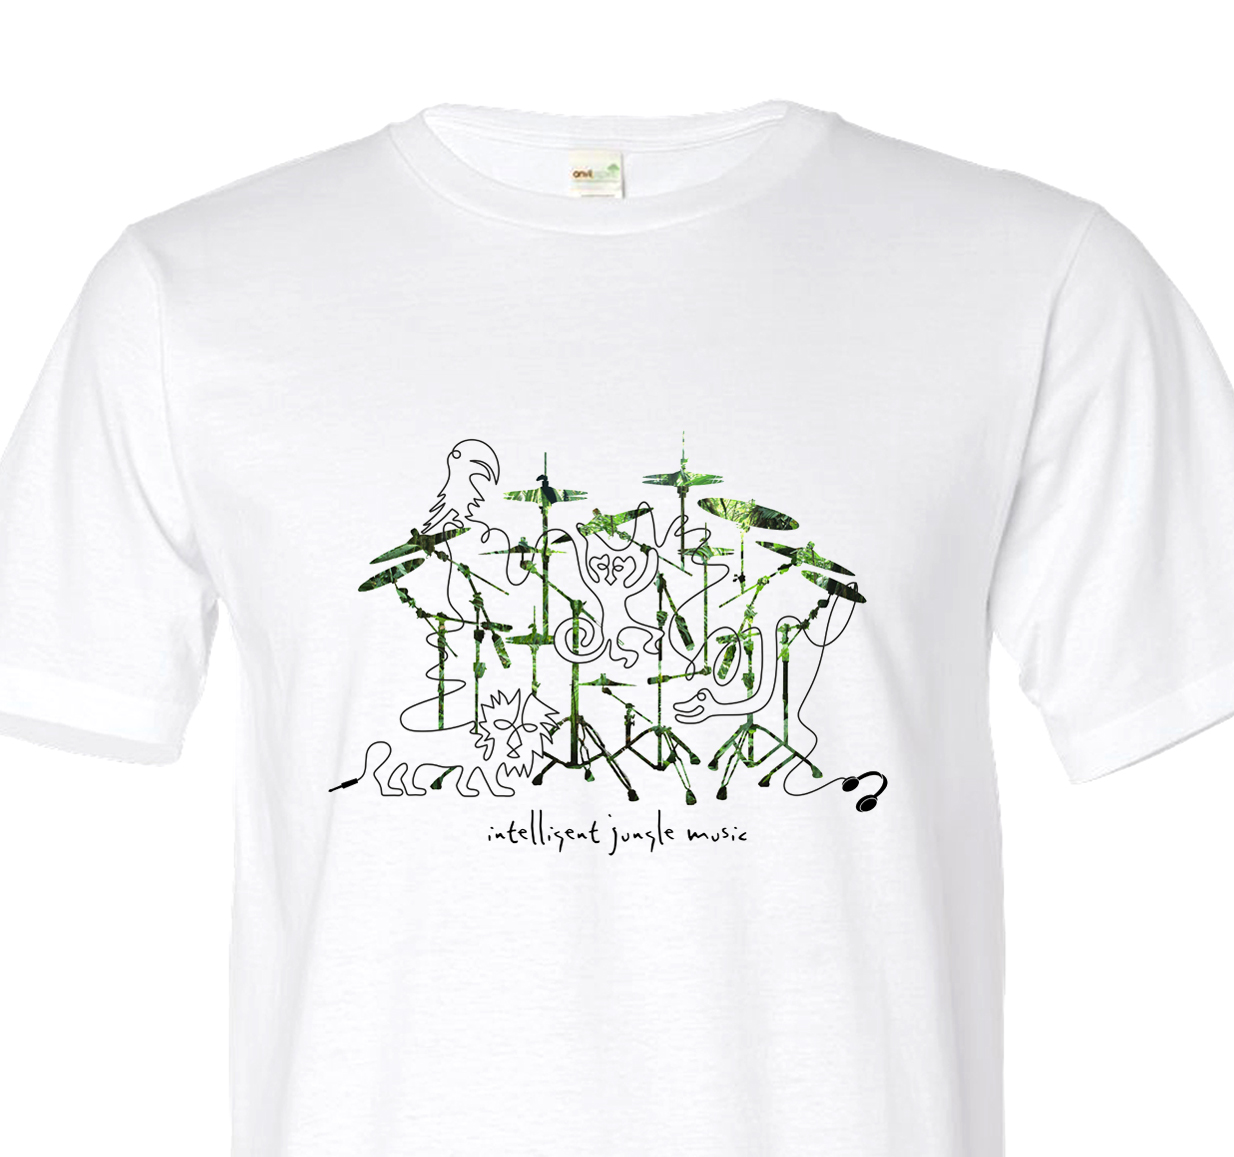 intelligent jungle music t shirt intelligent jungle music. Black Bedroom Furniture Sets. Home Design Ideas